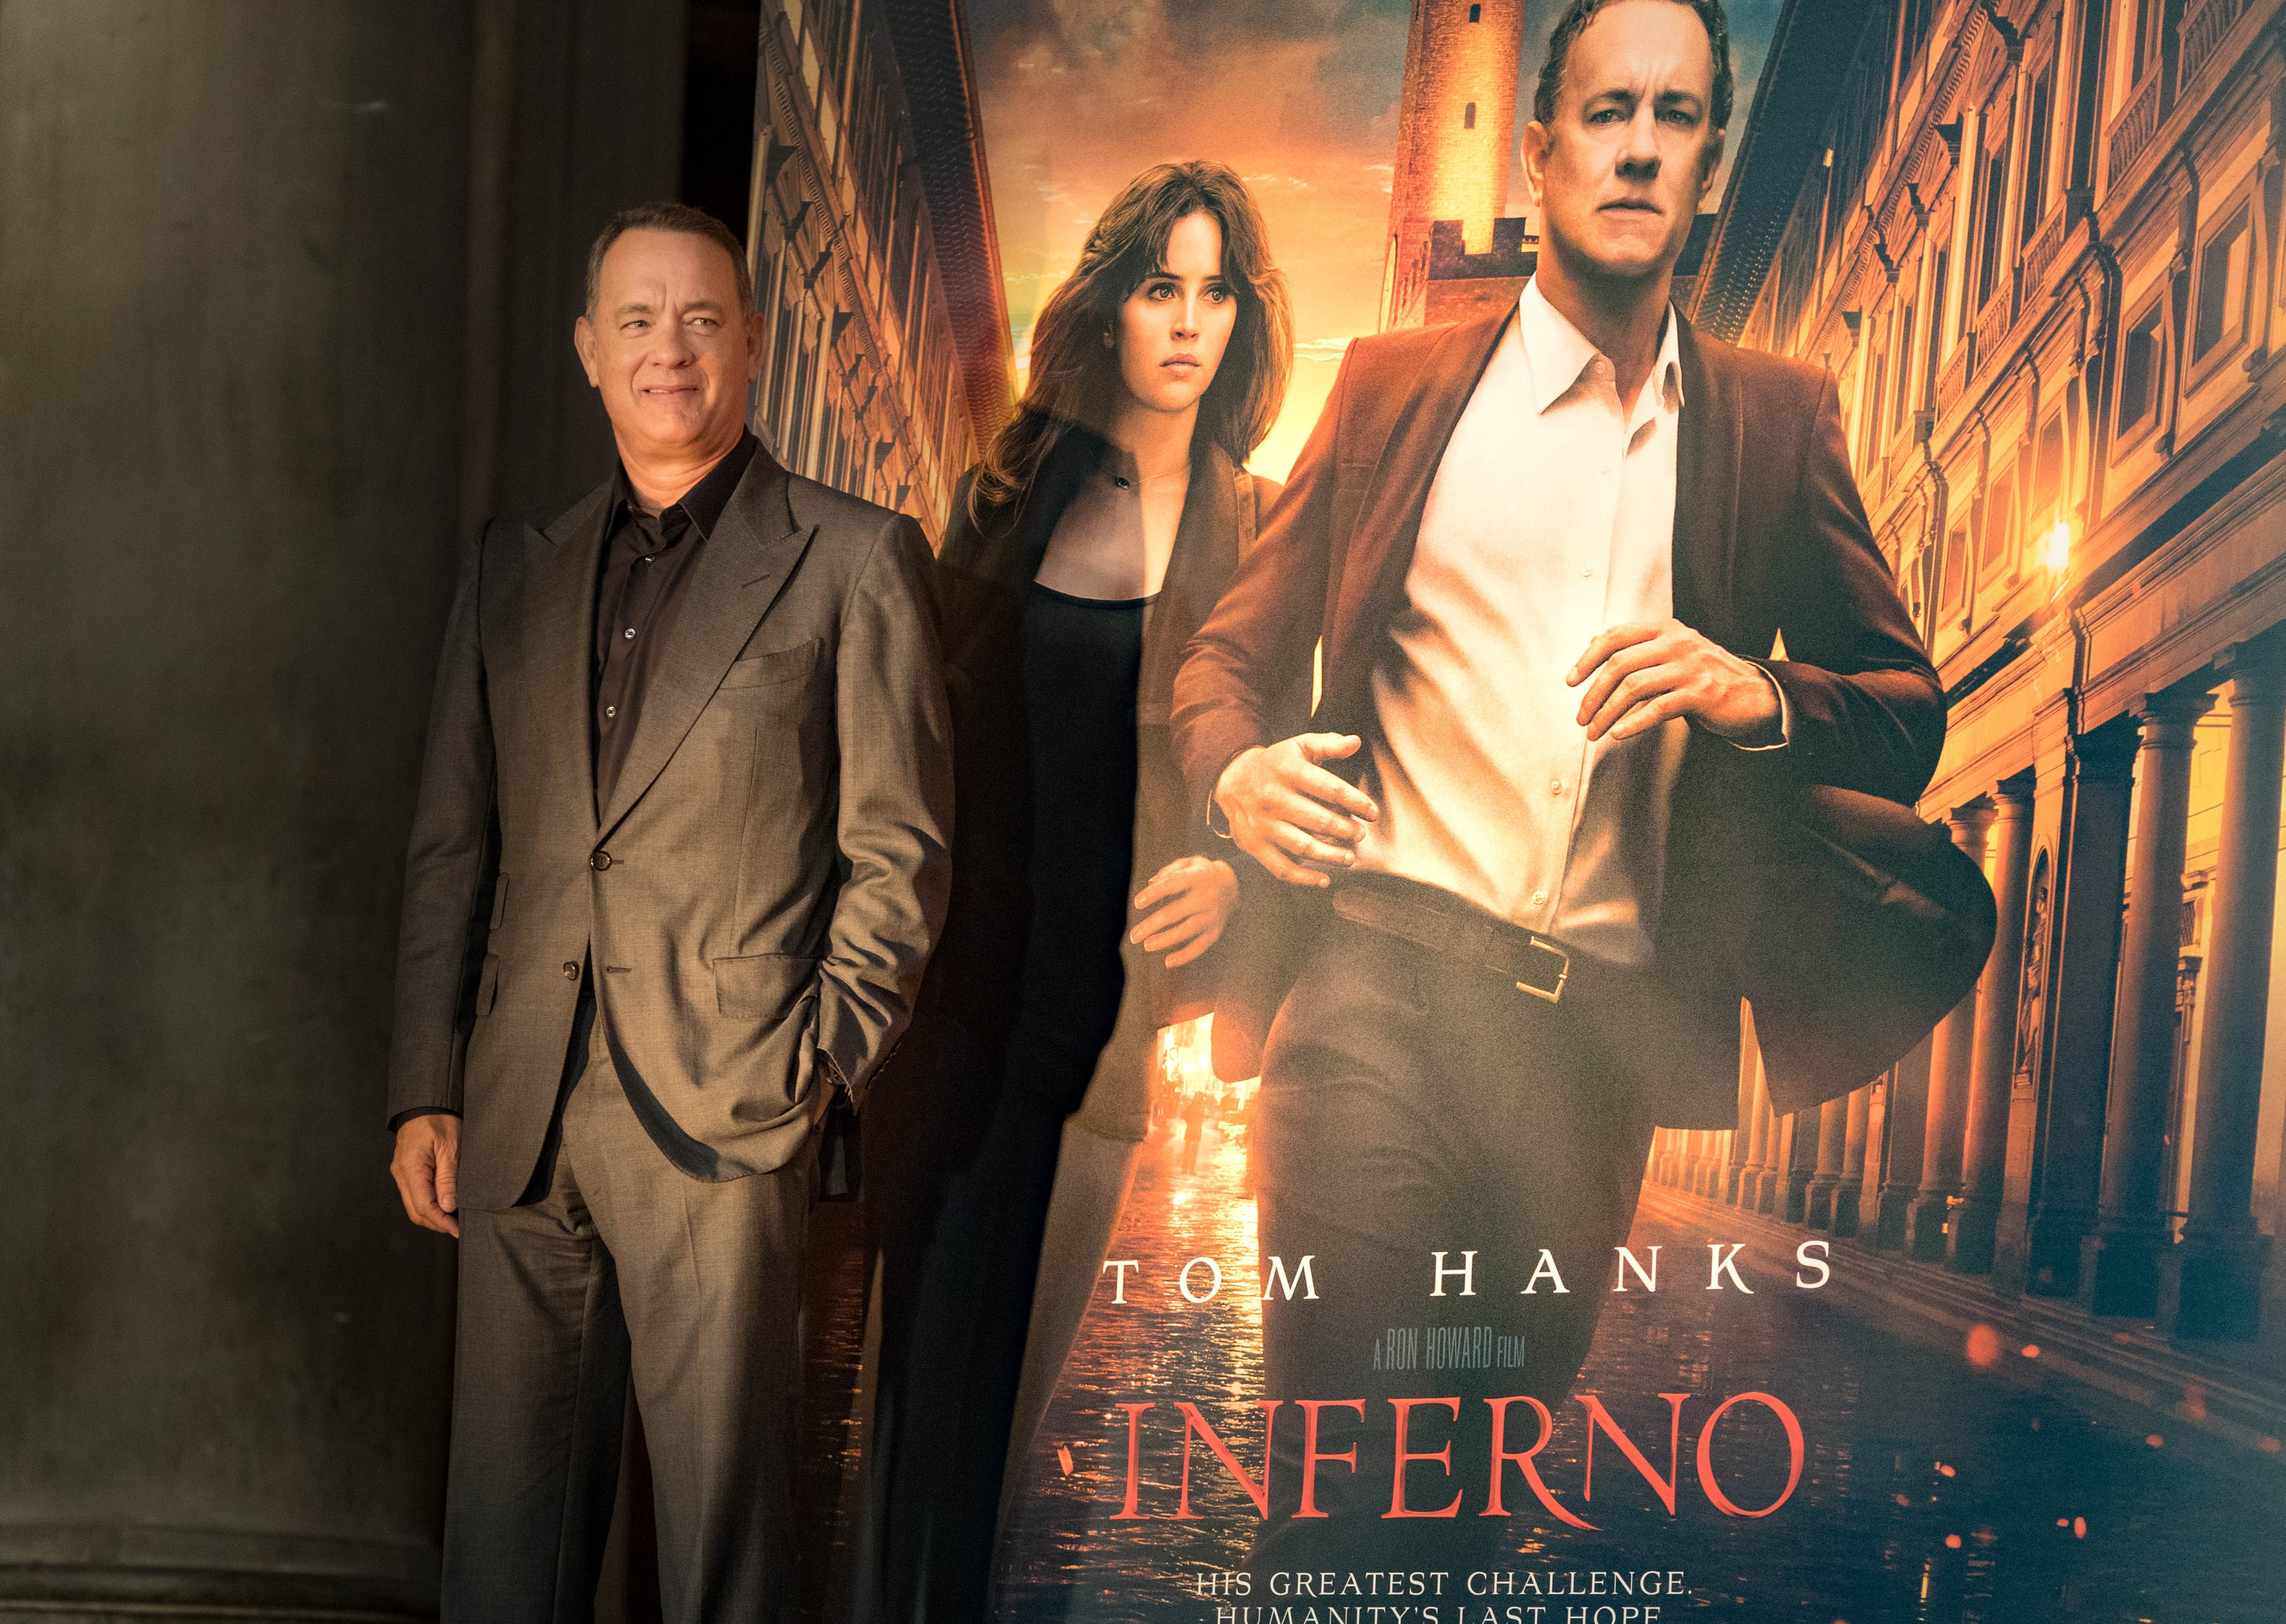 Tom Hanks attends the INFERNO Photo Call & Press Conference at The Hall of the Five Hundred on October 6, 2016 in Florence